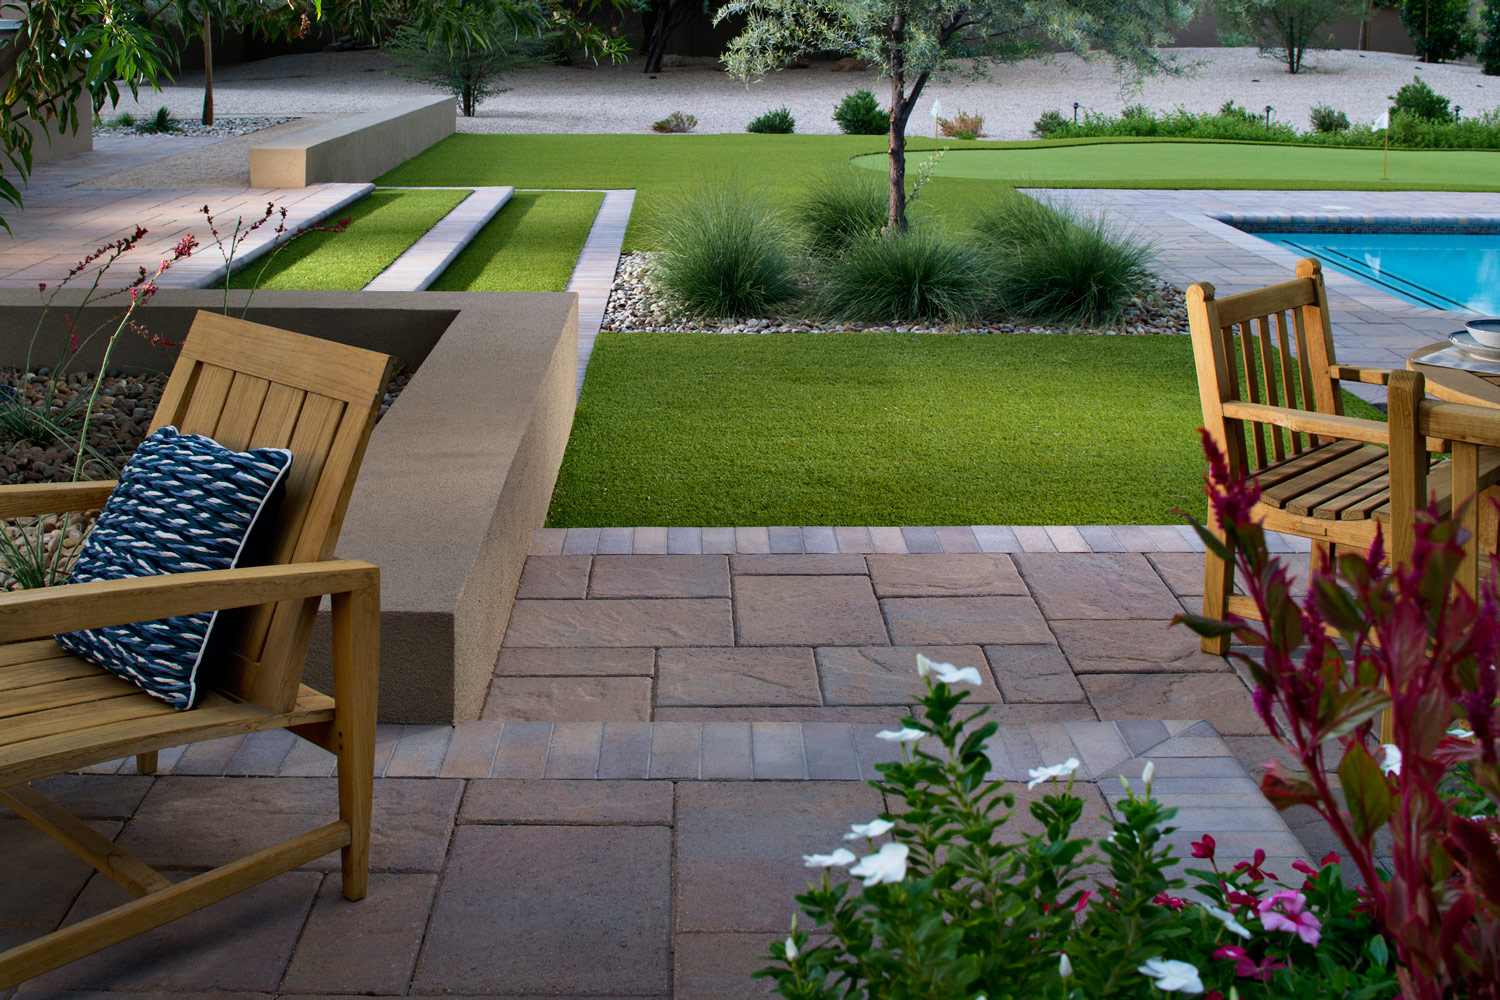 Choosing pavers for a walkway, patio or driveway